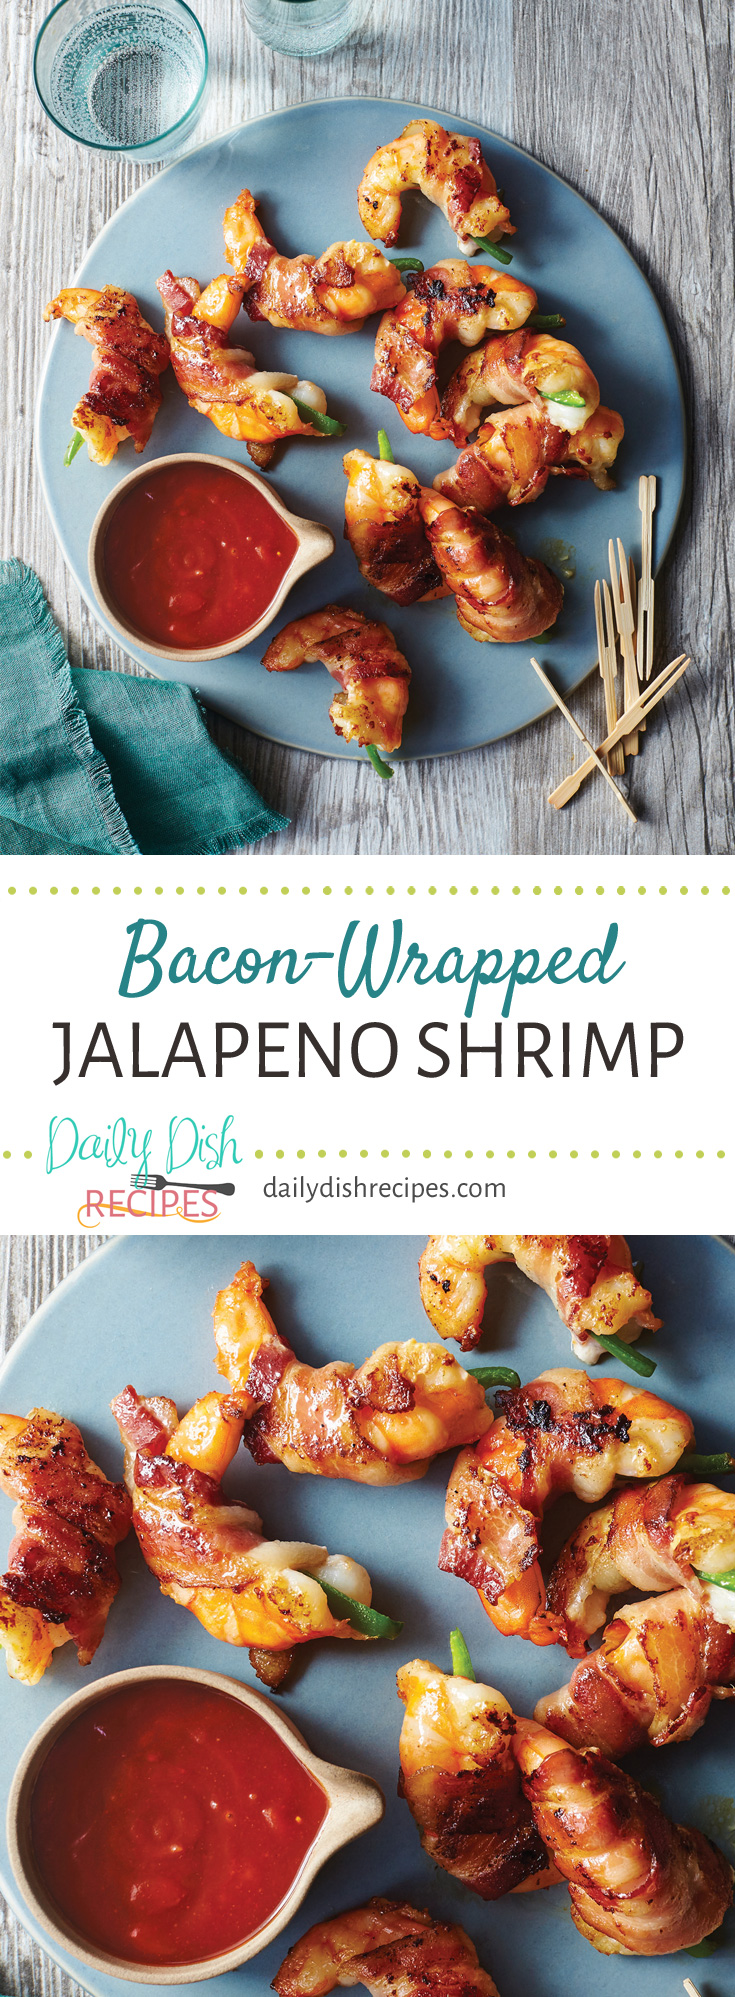 Bacon-Wrapped Jalapeno Shrimp with Cherry Cola BBQ Sauce full of flavor, sitting on the tongue with an exciting contrast of hot and sweet and savory. From the book Valerie's Home Cooking by Valerie Bertinelli.